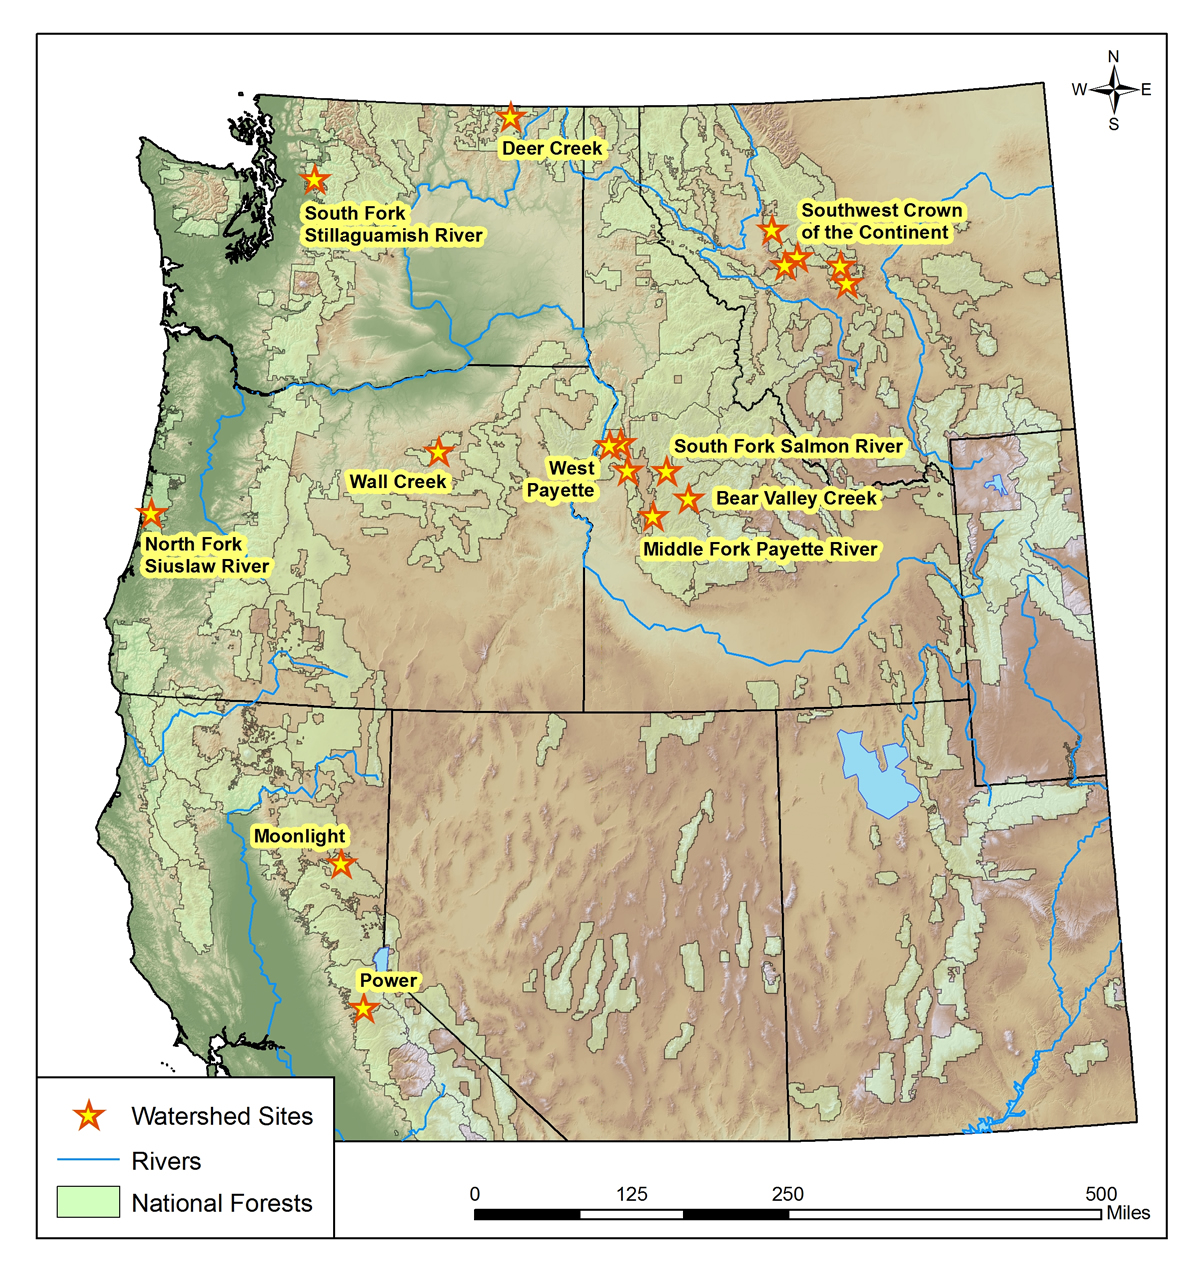 GRAIP Watershed Studies Air Water  Aquatic Environments AWAE - Map of us national forest